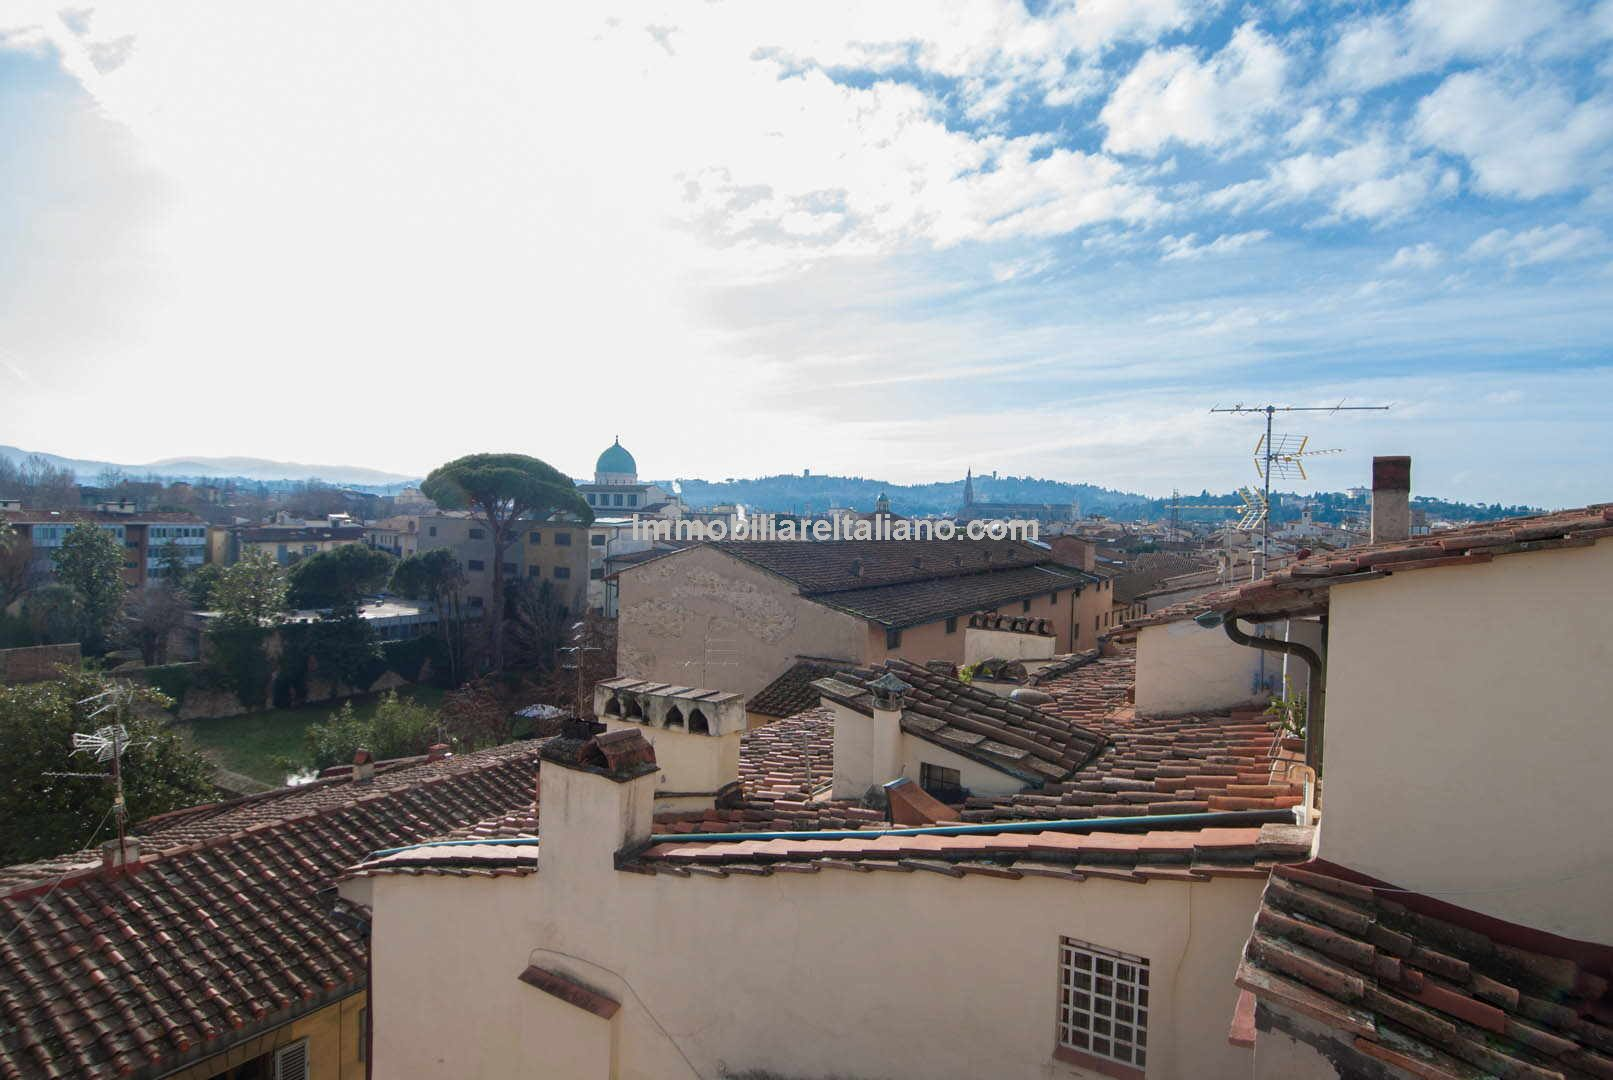 2 Bedroom apartment for sale in Florence Italy